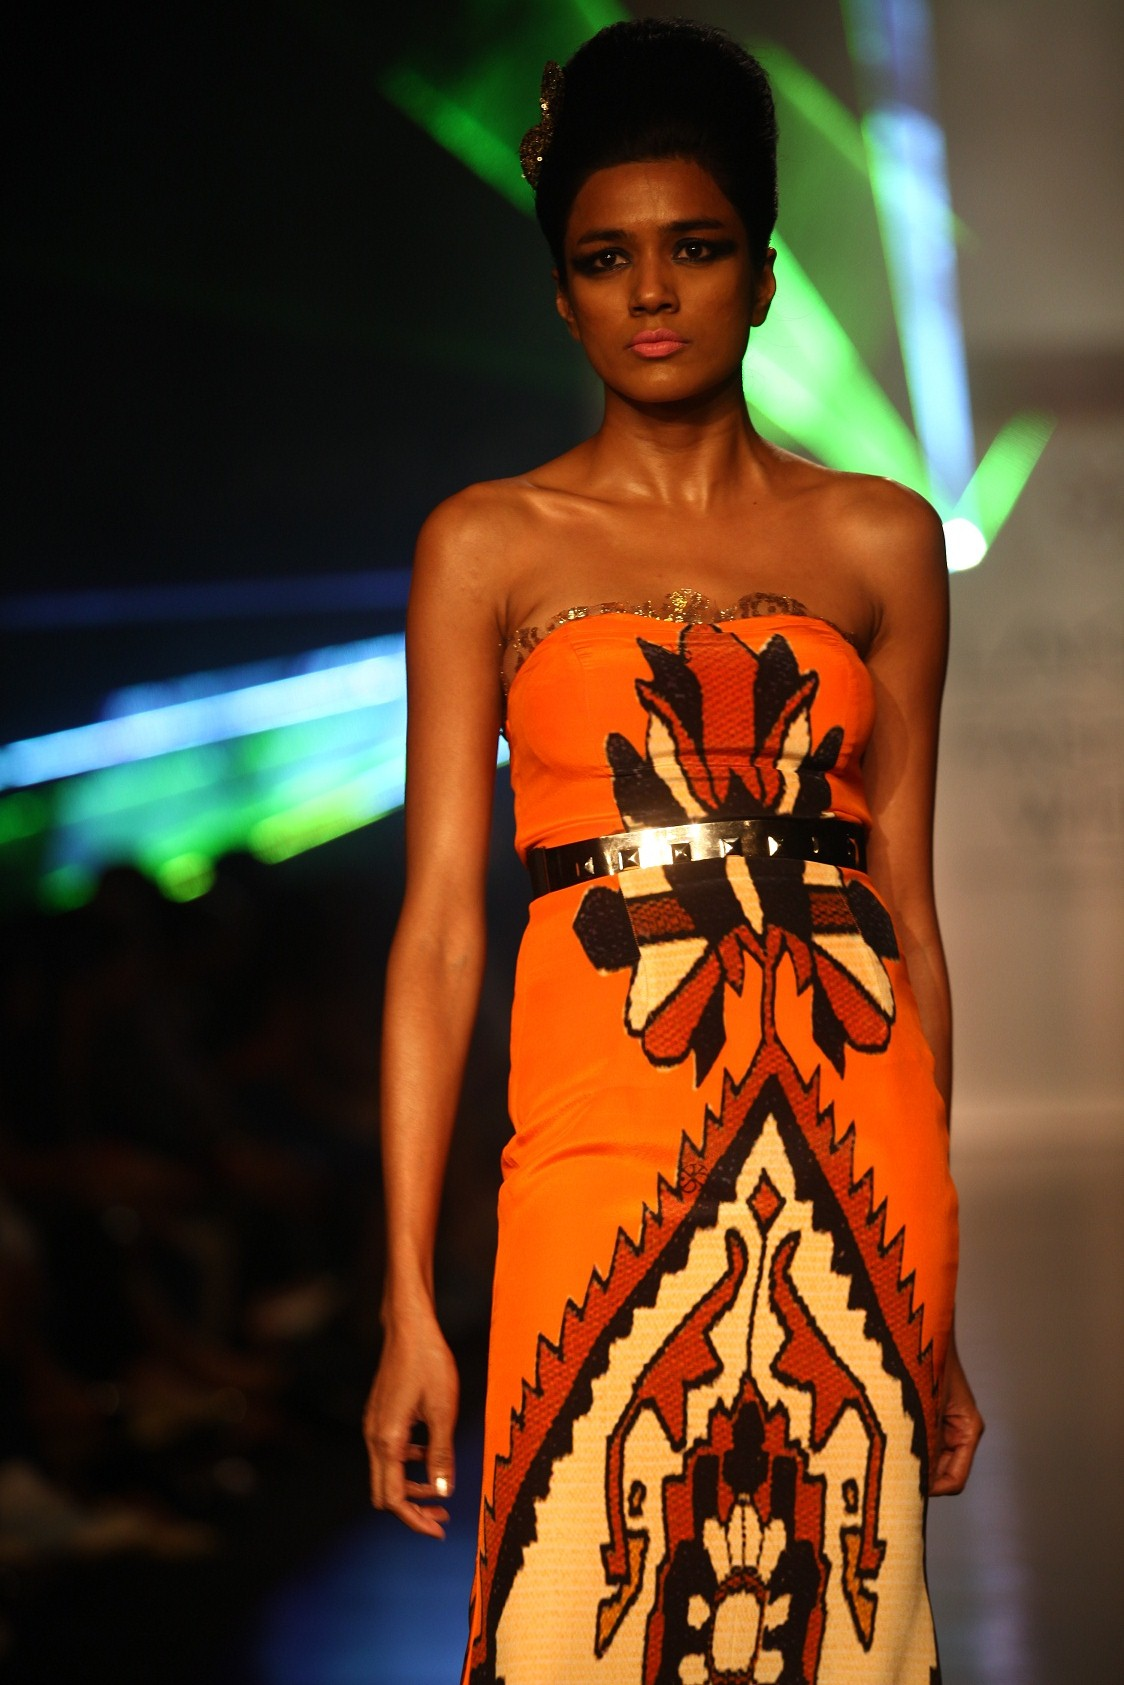 """August 2013: DHL presented the vibrant festive holiday collection by Pria Kataaria Puri called """"Fast and Curious"""" at Lakmé Fashion Week Winter/Festive 2013. Against a backdrop of a multicolor laser show, the models strutted down the ramp in itsybi"""